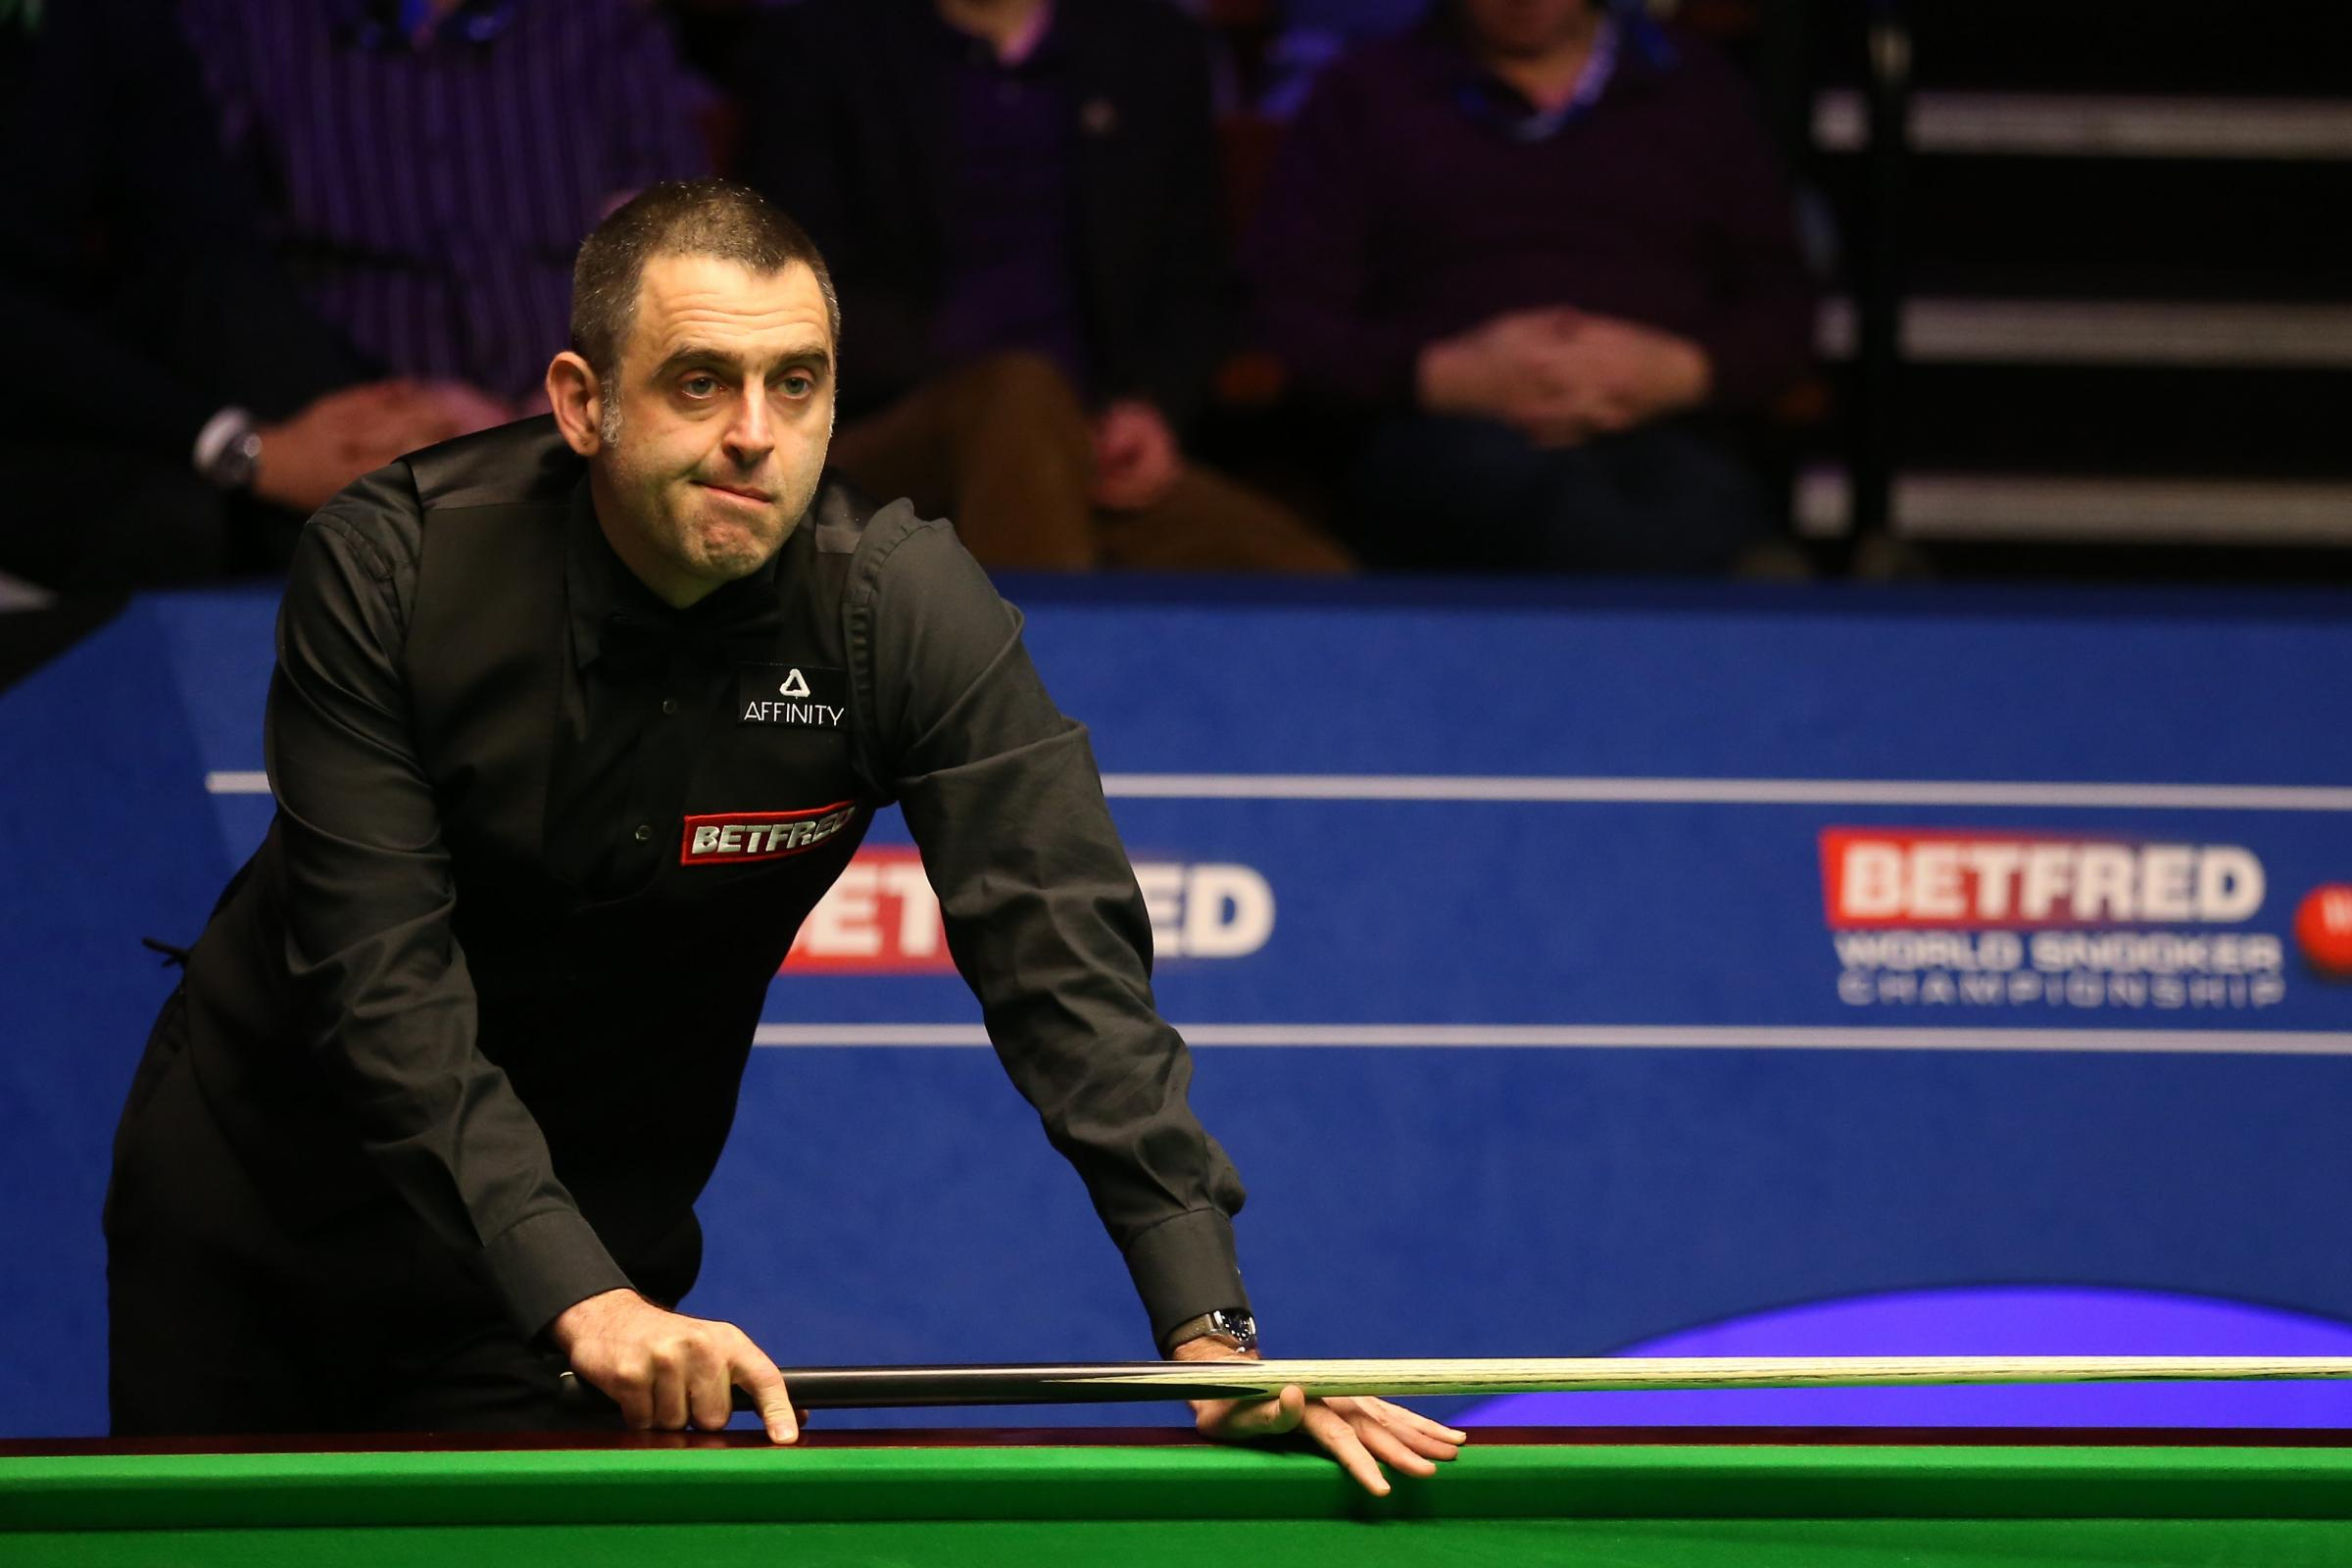 Ronnie O'Sullivan was on the receiving end of arguably the biggest shock in Crucible history as he lost to James Cahill